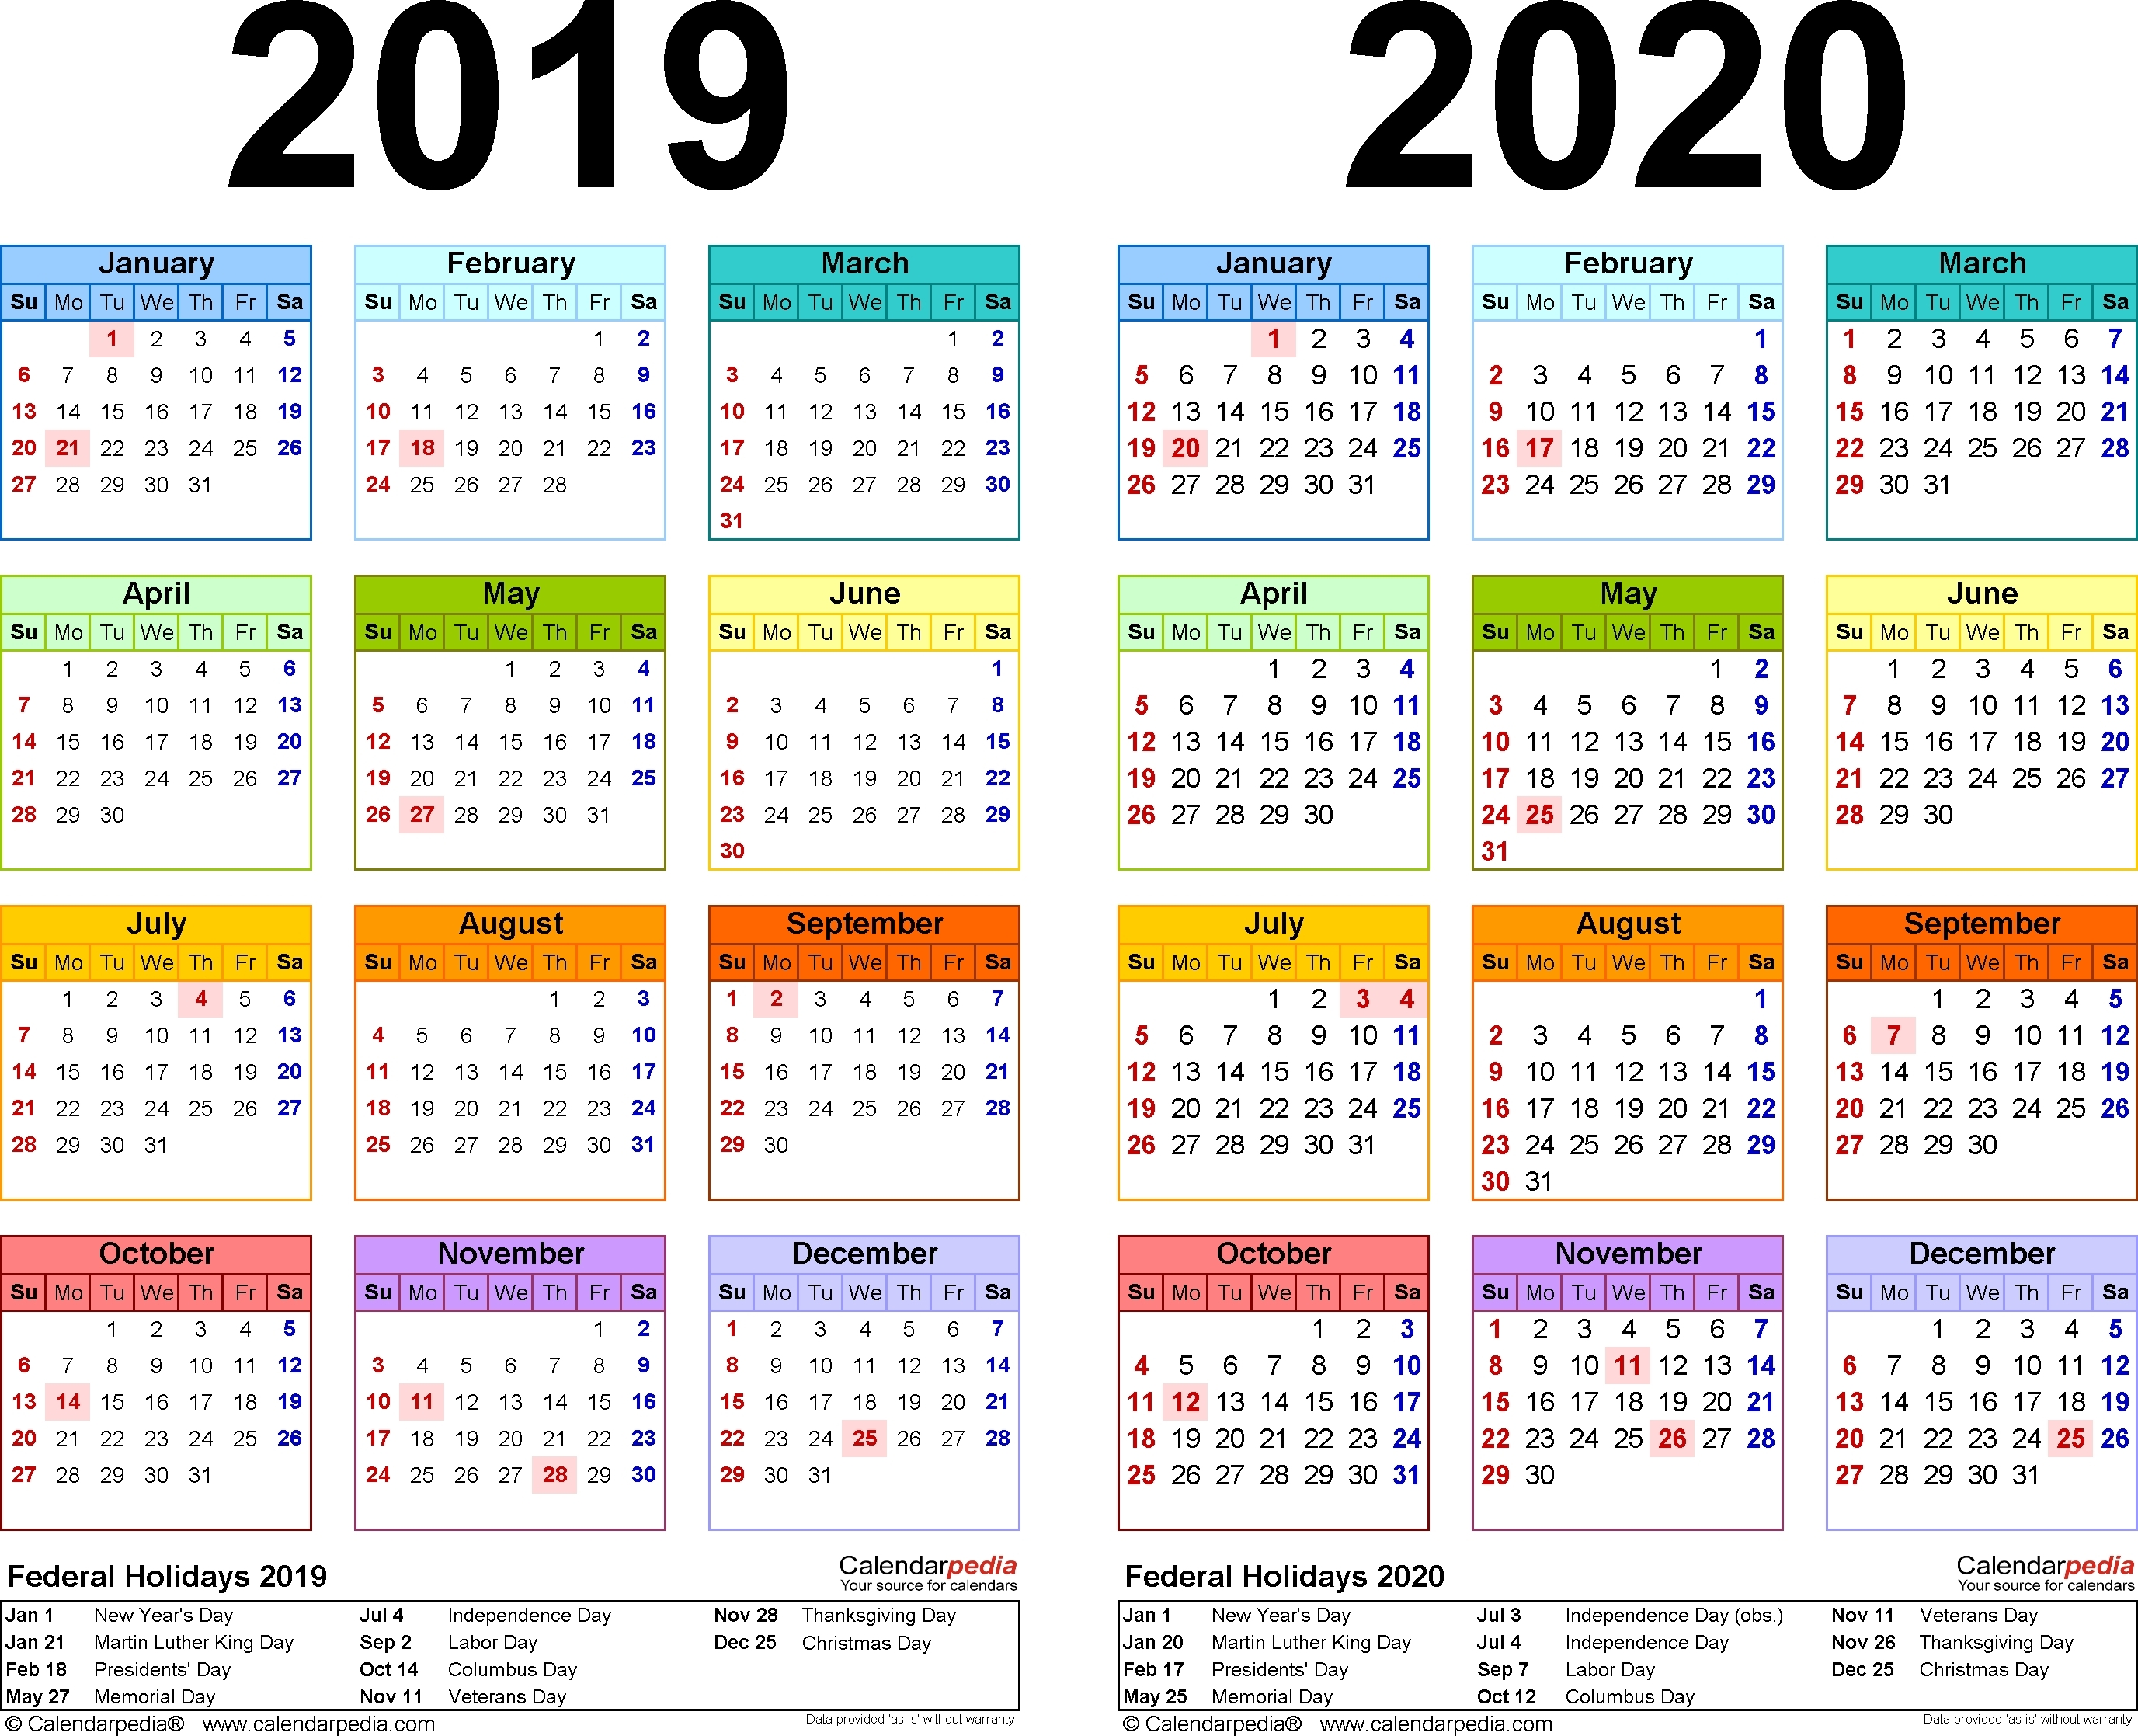 School Calendar And Holidays 2020 | Calendar Design Ideas-Calendar 2020 With Holidays South Africa